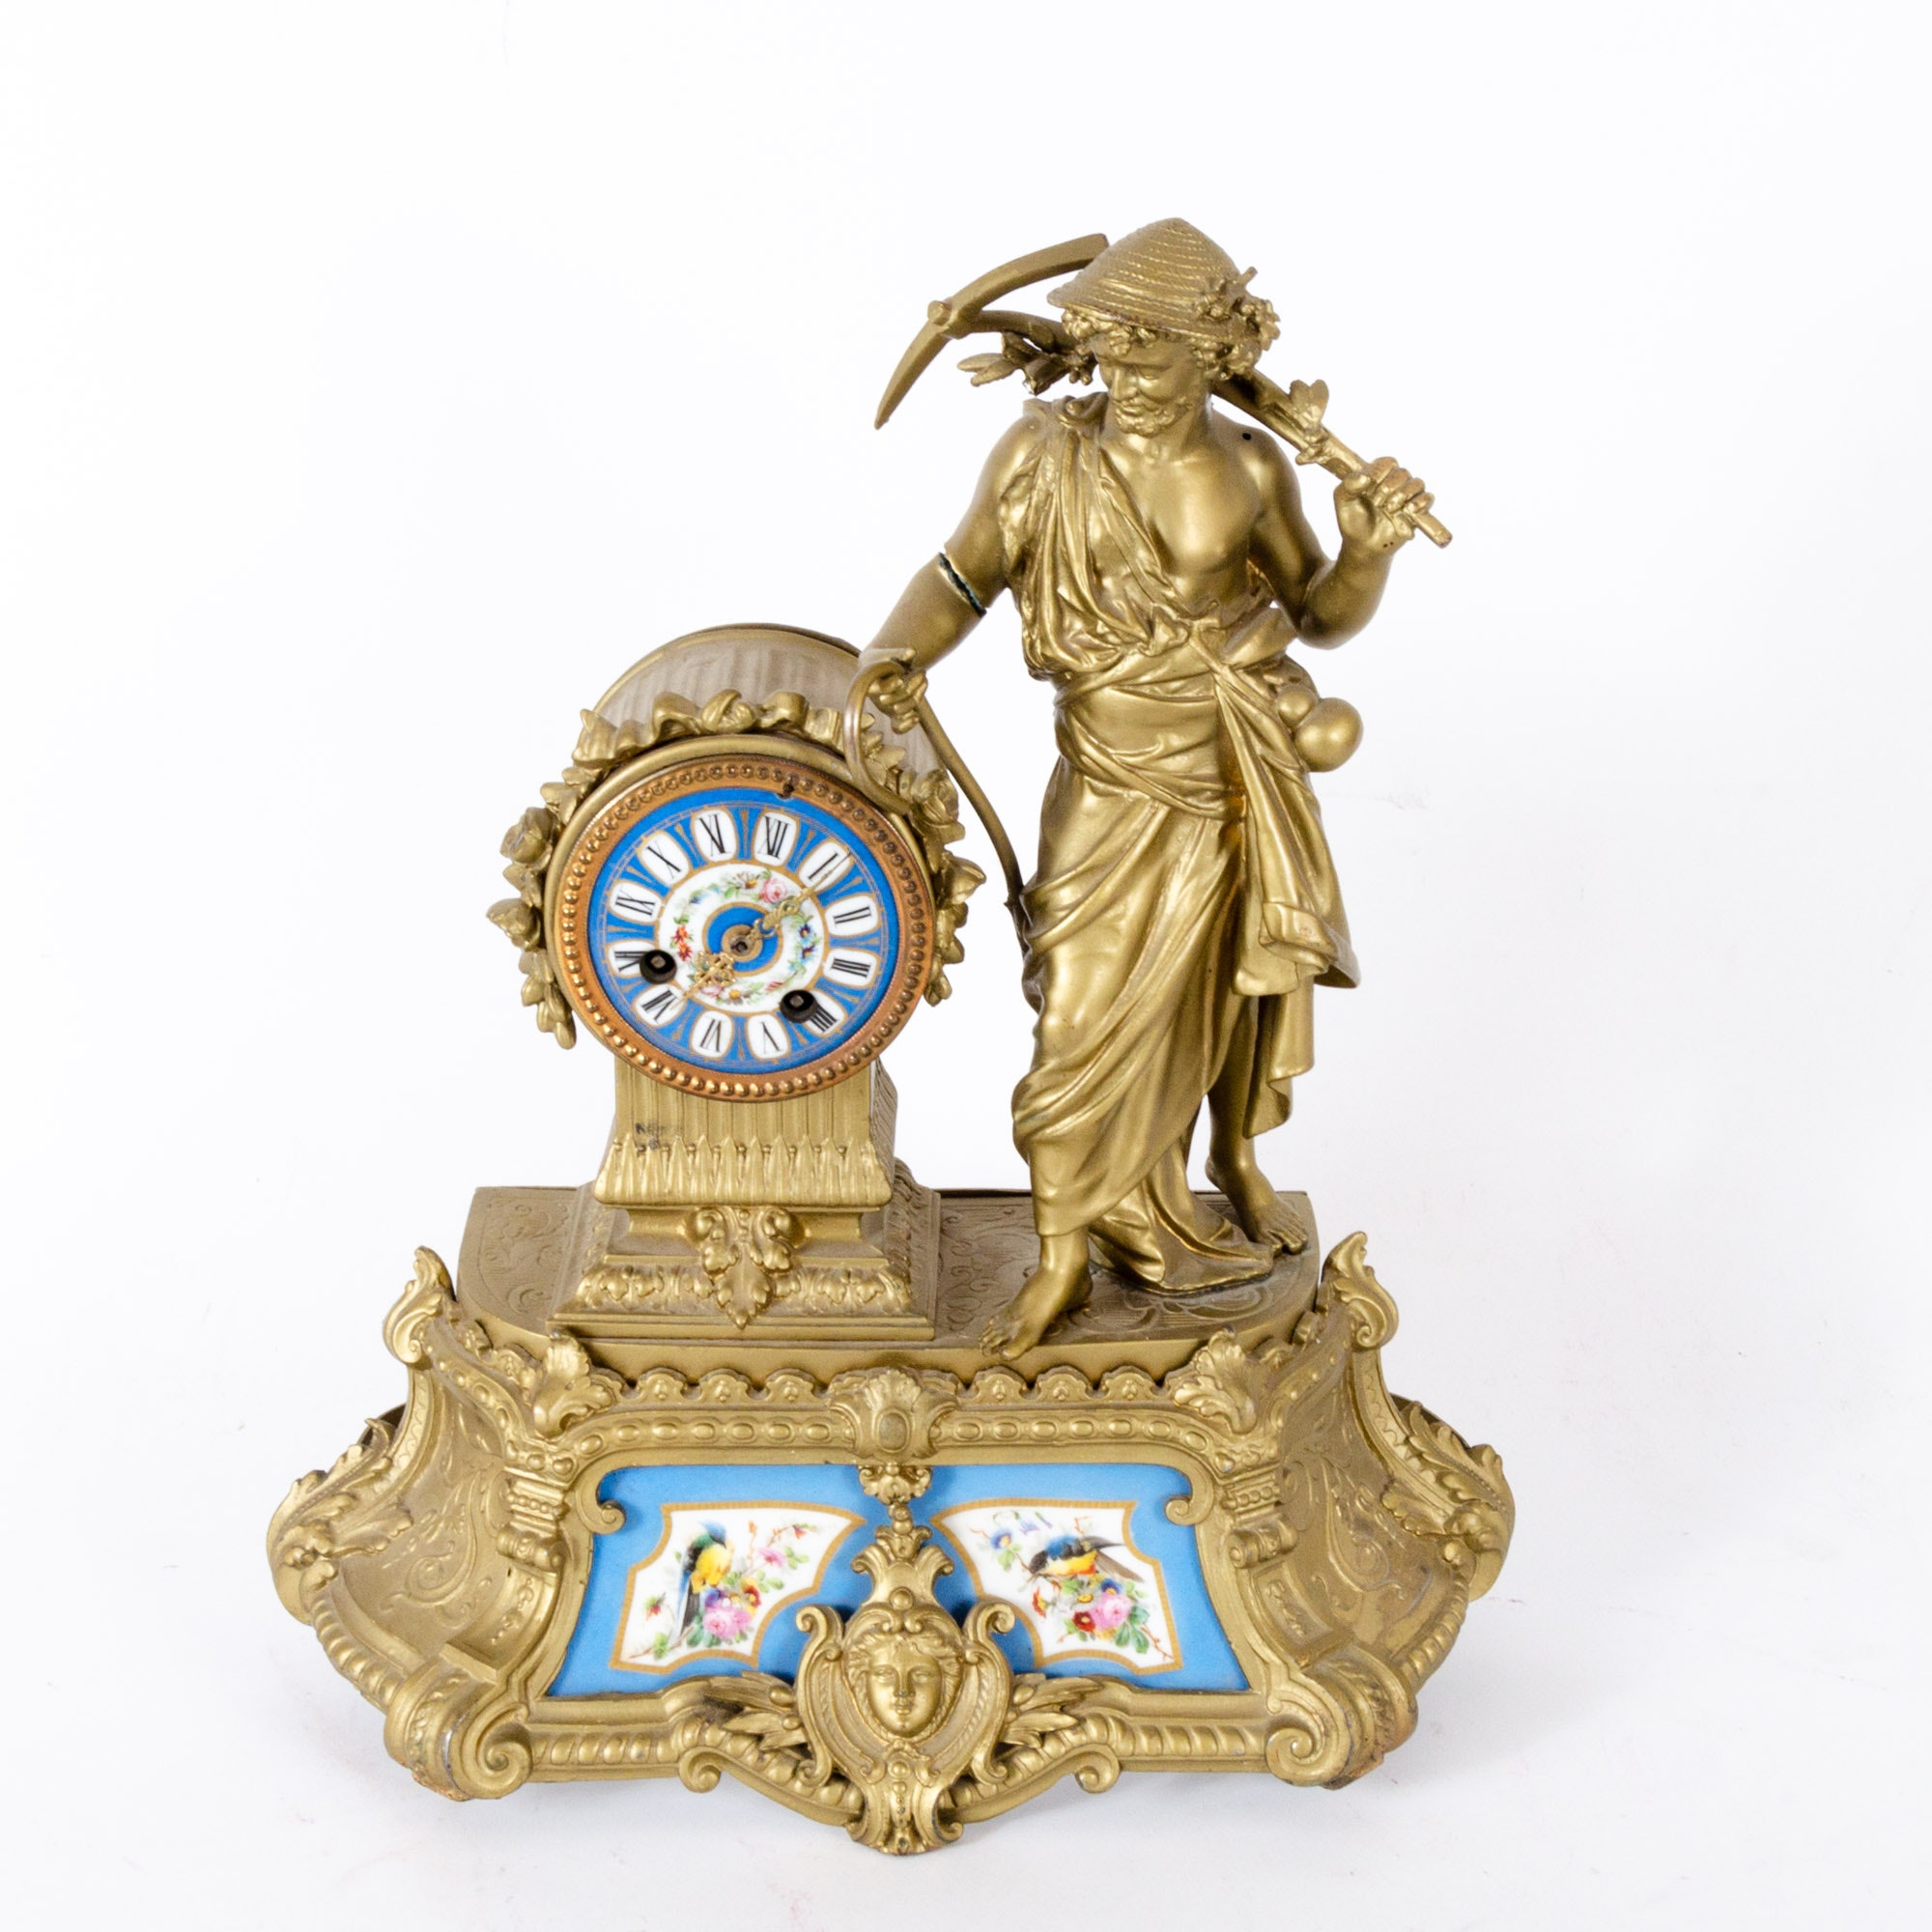 19th Century Gilt Bronze and Porcelain Sèvres Style Figural Mantel Clock